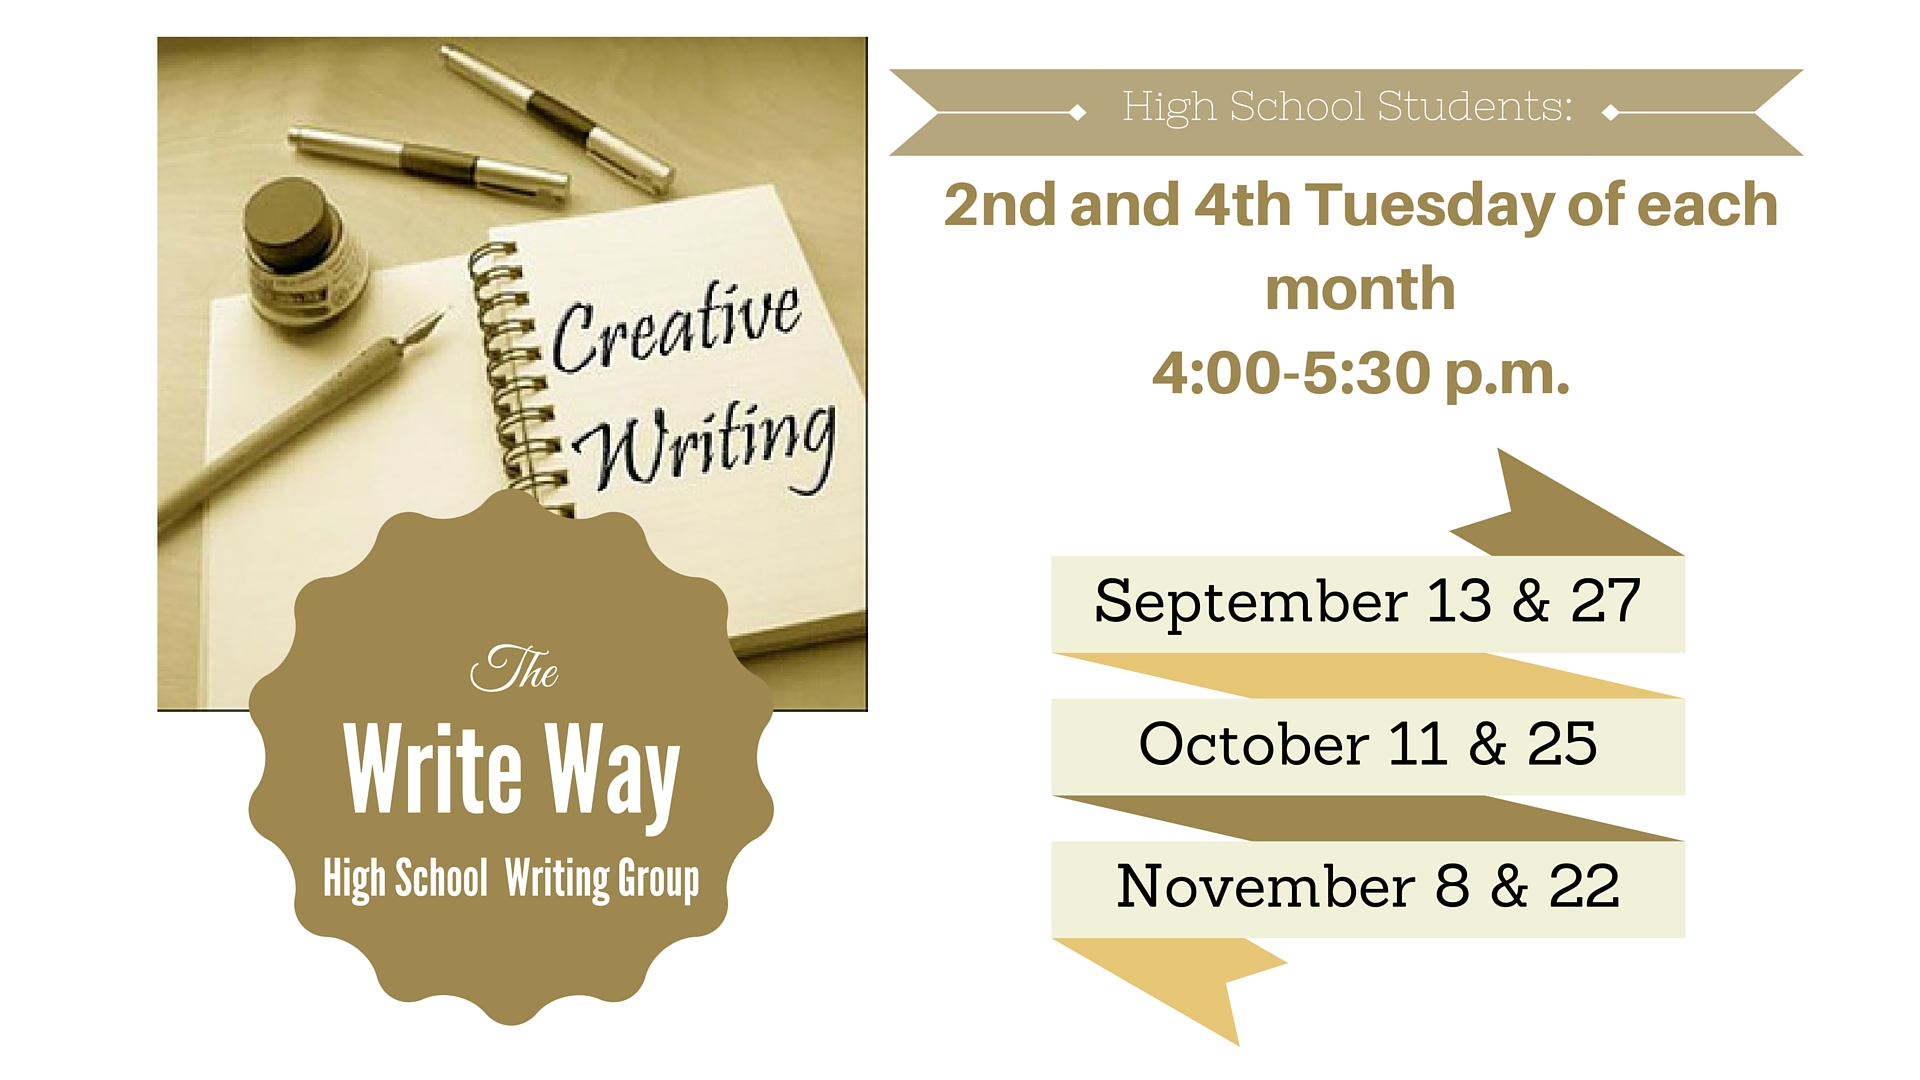 Events city of hiawatha ia all students in grades 9 12 are invited to attend this writing round table at the hiawatha public library writers will share their work with each other stopboris Choice Image